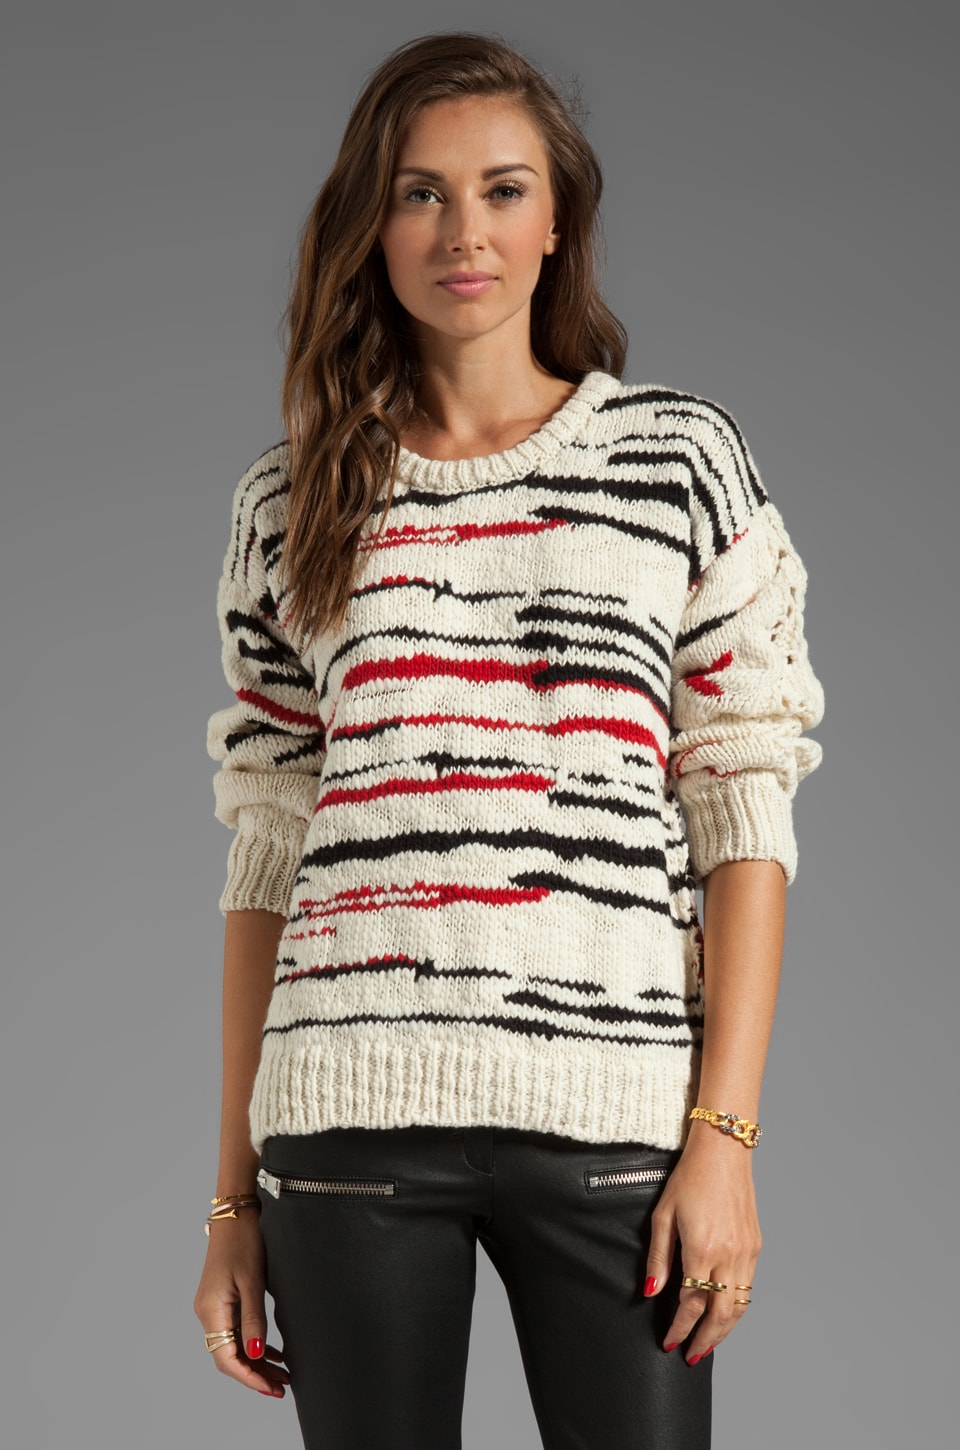 IRO Dara Pull Maille Sweater in Ecru